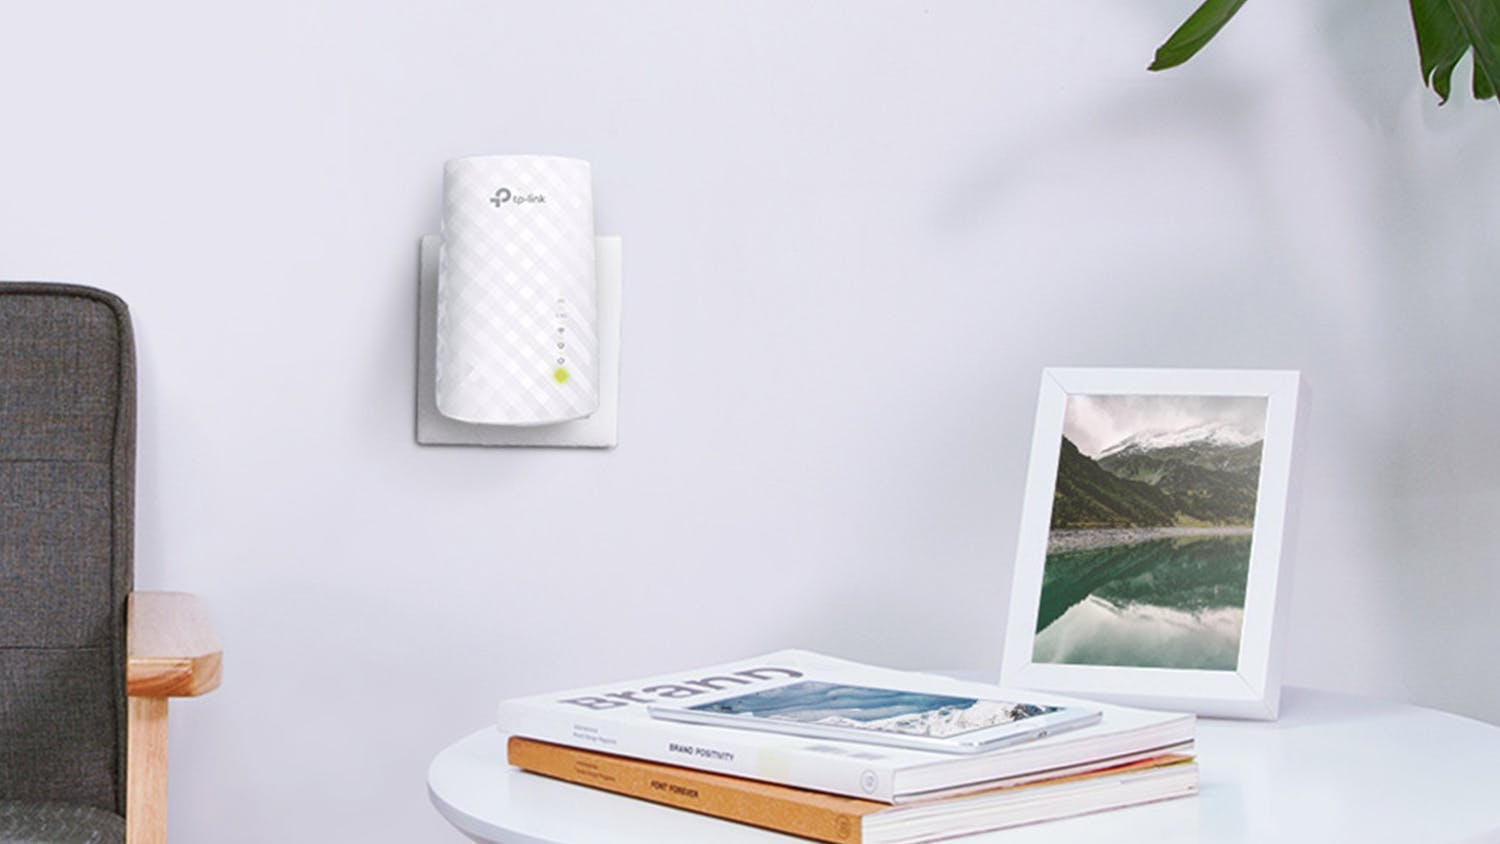 TP-Link AC750 Dual Band Wi-Fi Range Extender